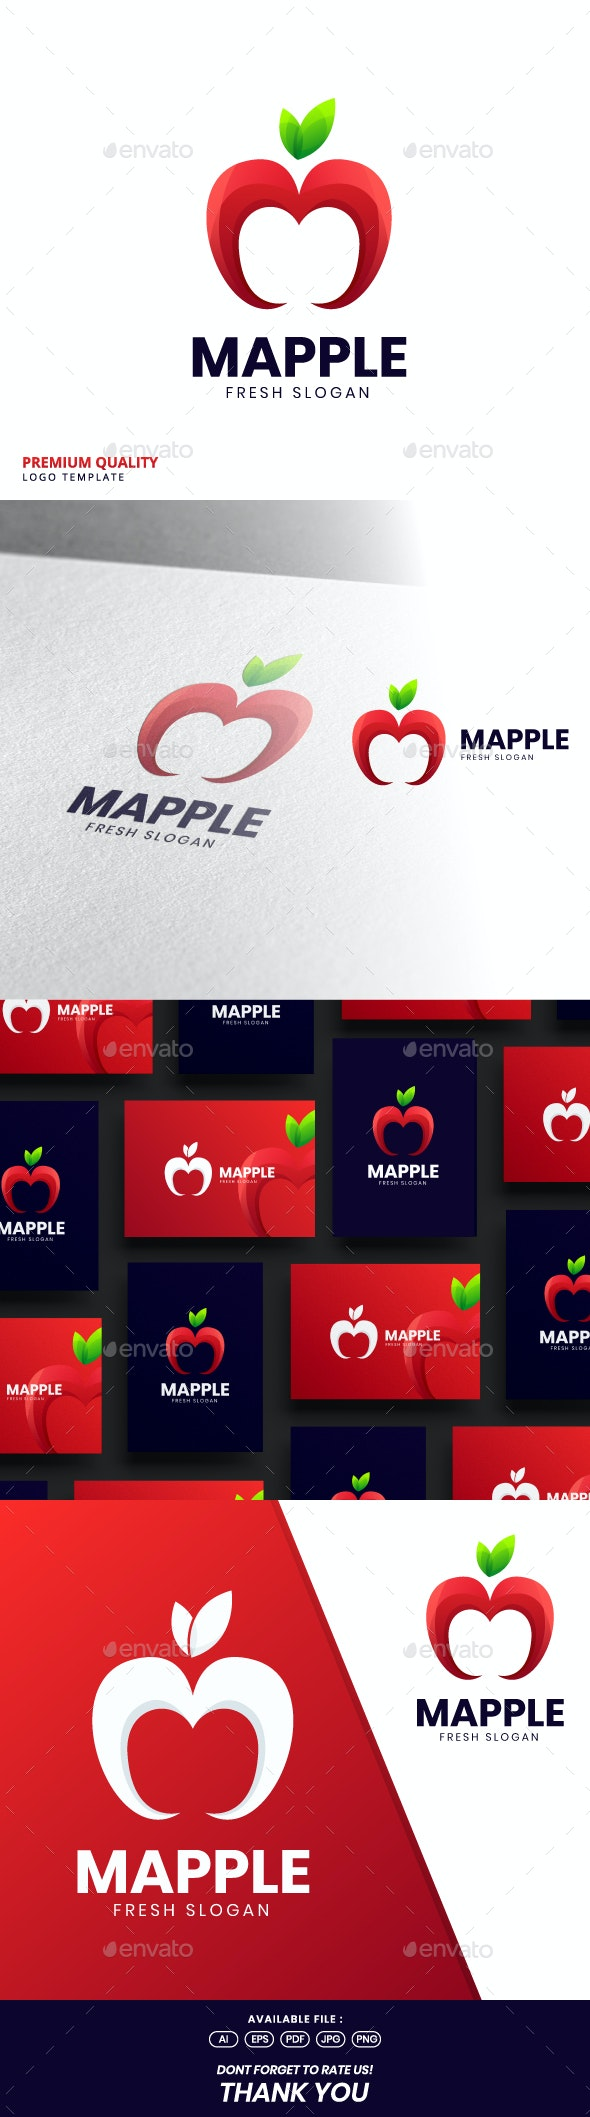 Apple M Logo Template - Food Logo Templates